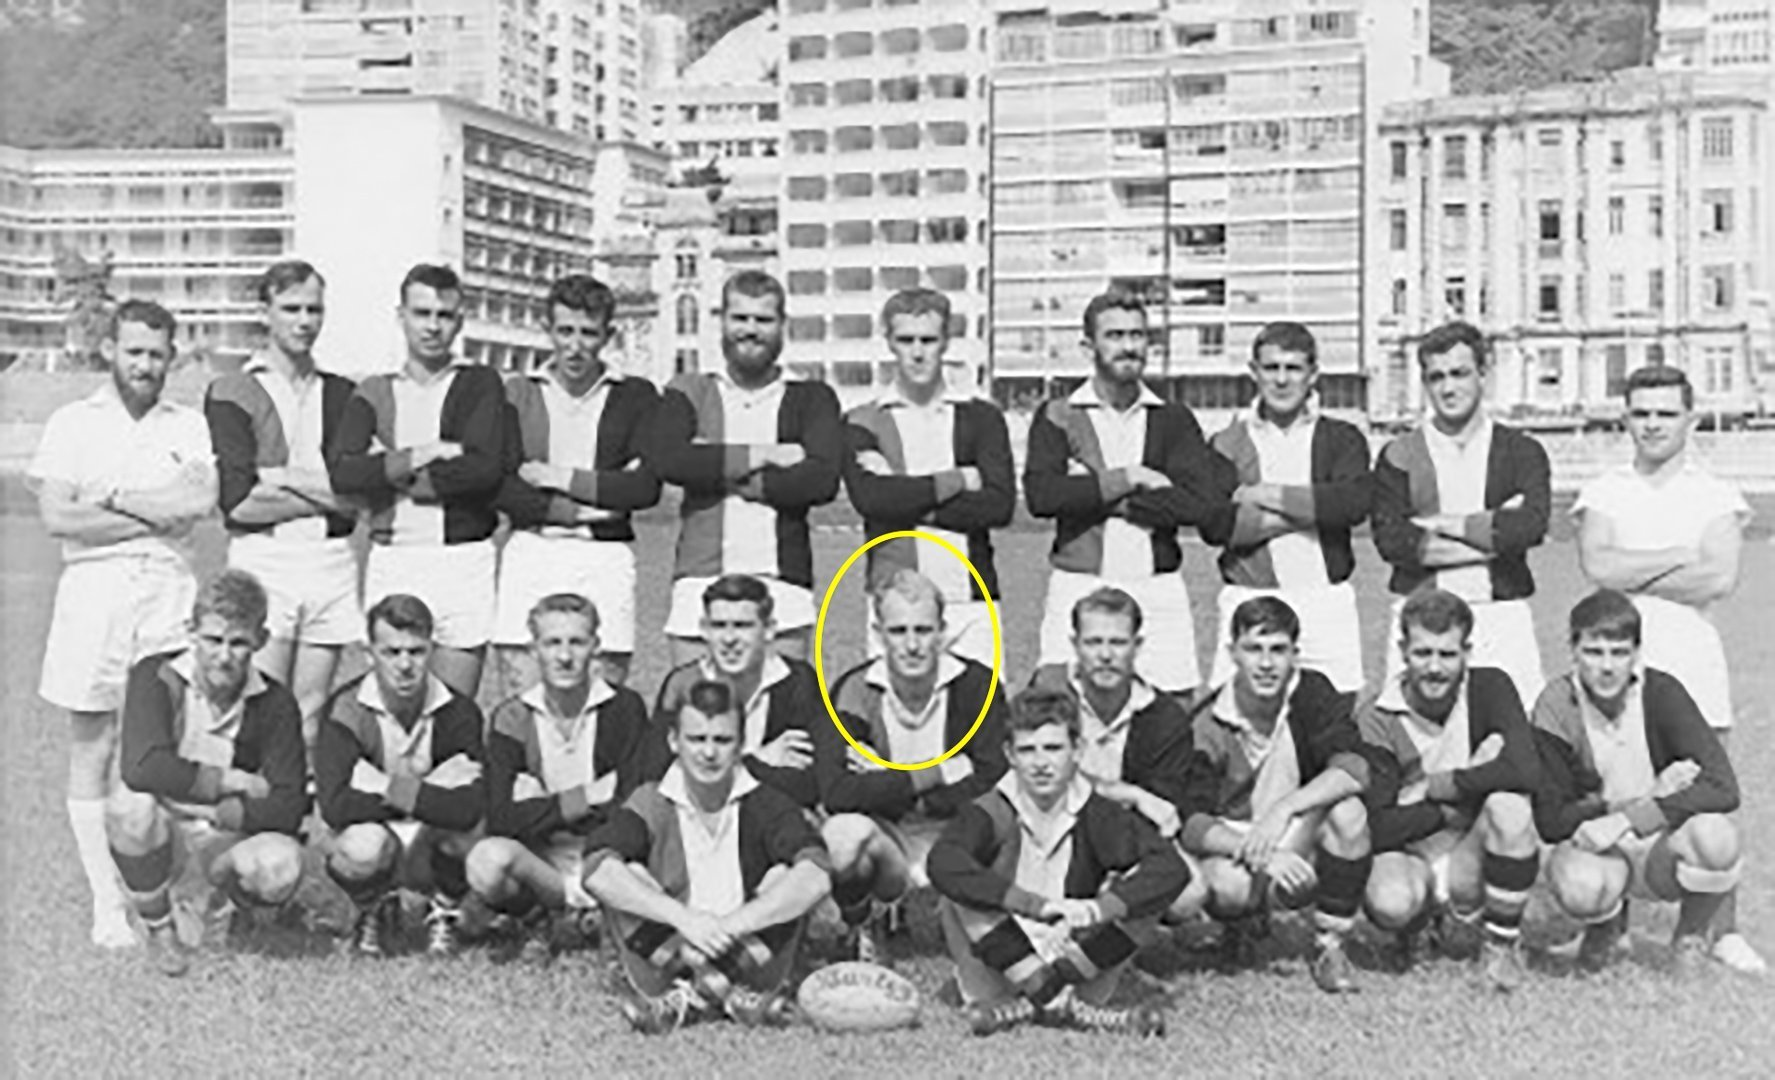 Australian Rules Football Navy team HMAS DUCHESS (vs. HMAS SYDNEY) in Hong Kong during a mid-deployment break.  DUCHESS had a crew of around 330 and could field its own Aussie Rules team.  Back row, far left: Deputy Marine Engineer officer of DUCHESS at the time (1965-66), Lieutenant Bob Nattey RAN.  Seated next to Bruce on his right: Lieutenant Adrian Waite RAN.  Bruce is the team Captain.  Information credit John Ingram, Chris Bolton, Ian Pfennigwerth